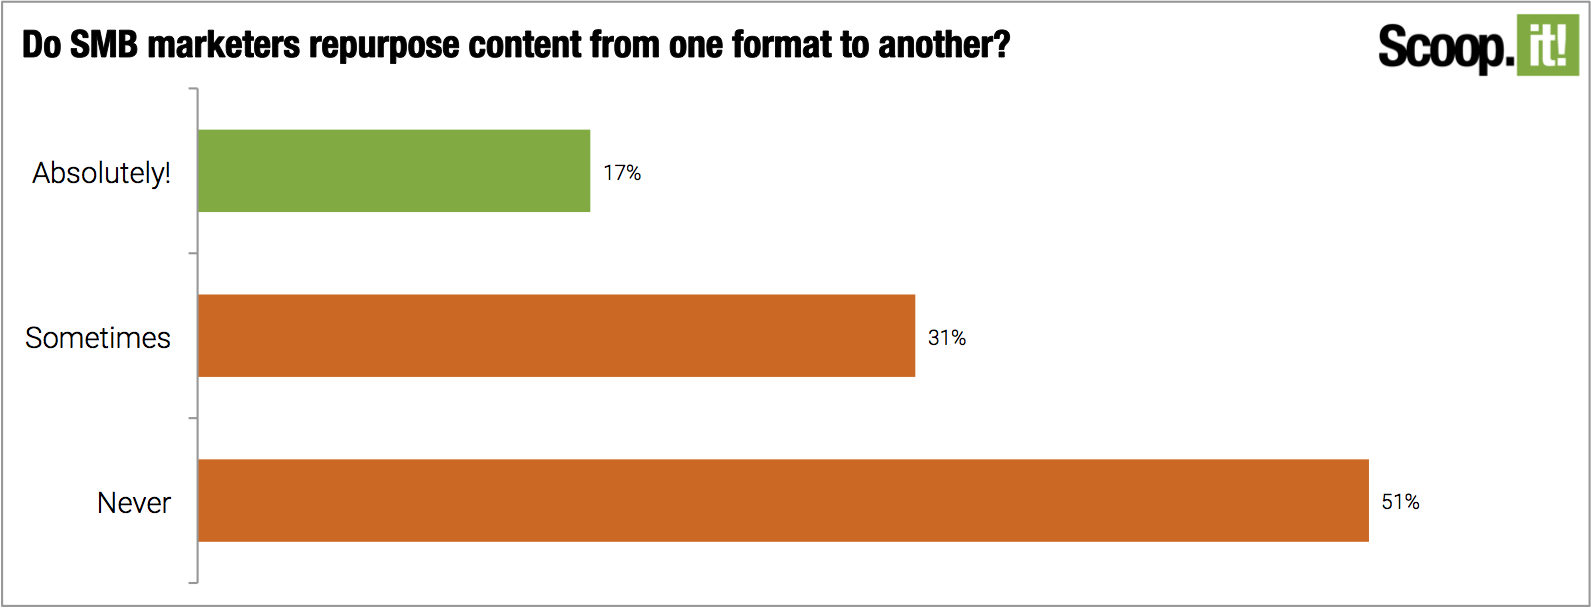 Do SMB marketers repurpose content from one format to another?